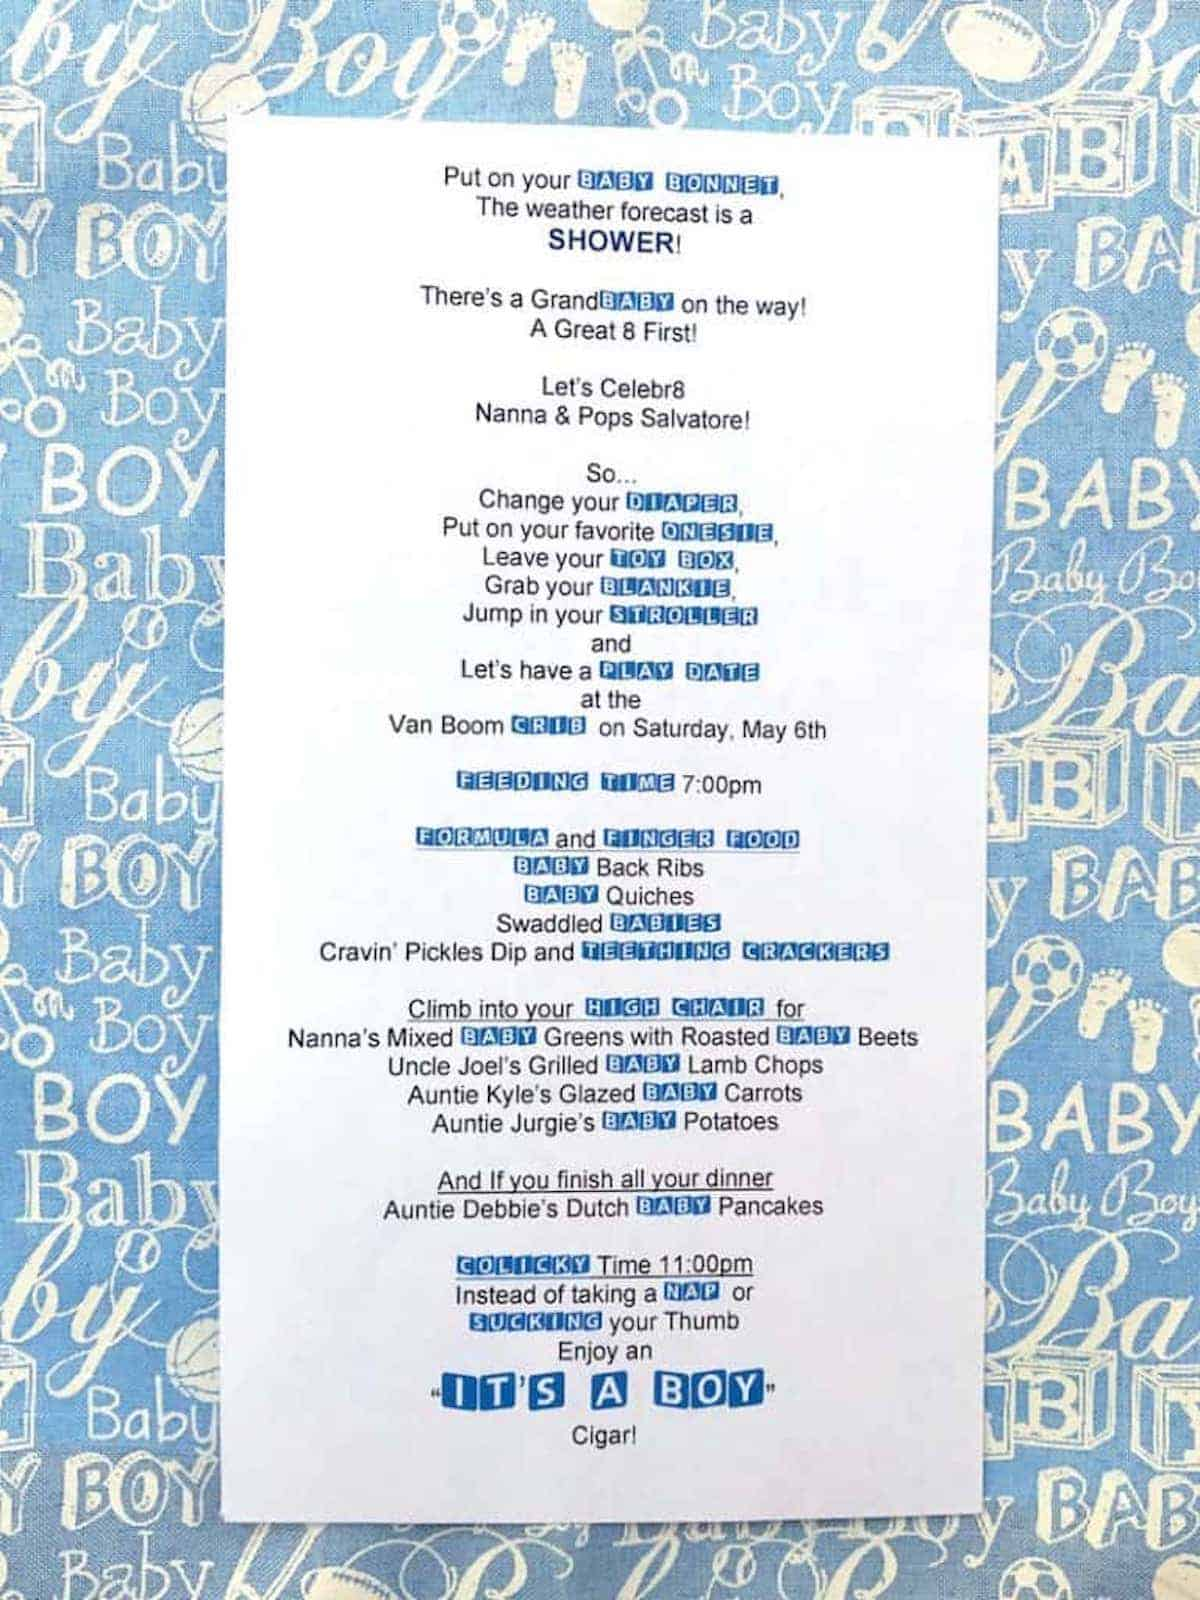 Invitation to a baby boy grand baby shower.